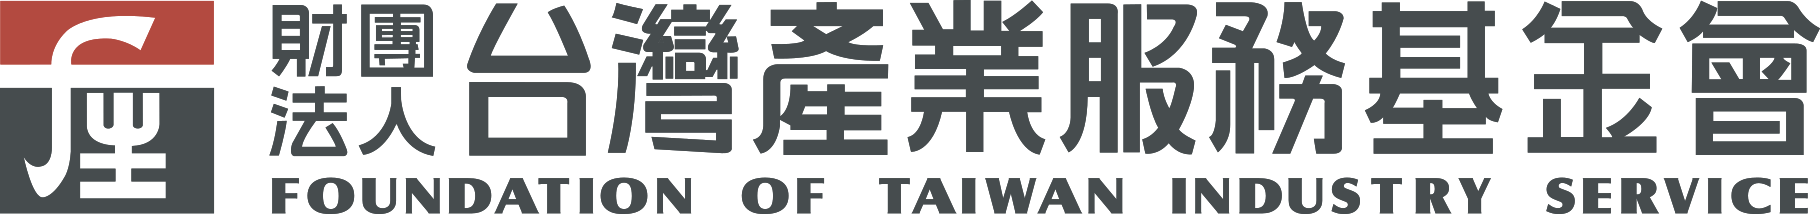 foundation of taiwan industry service